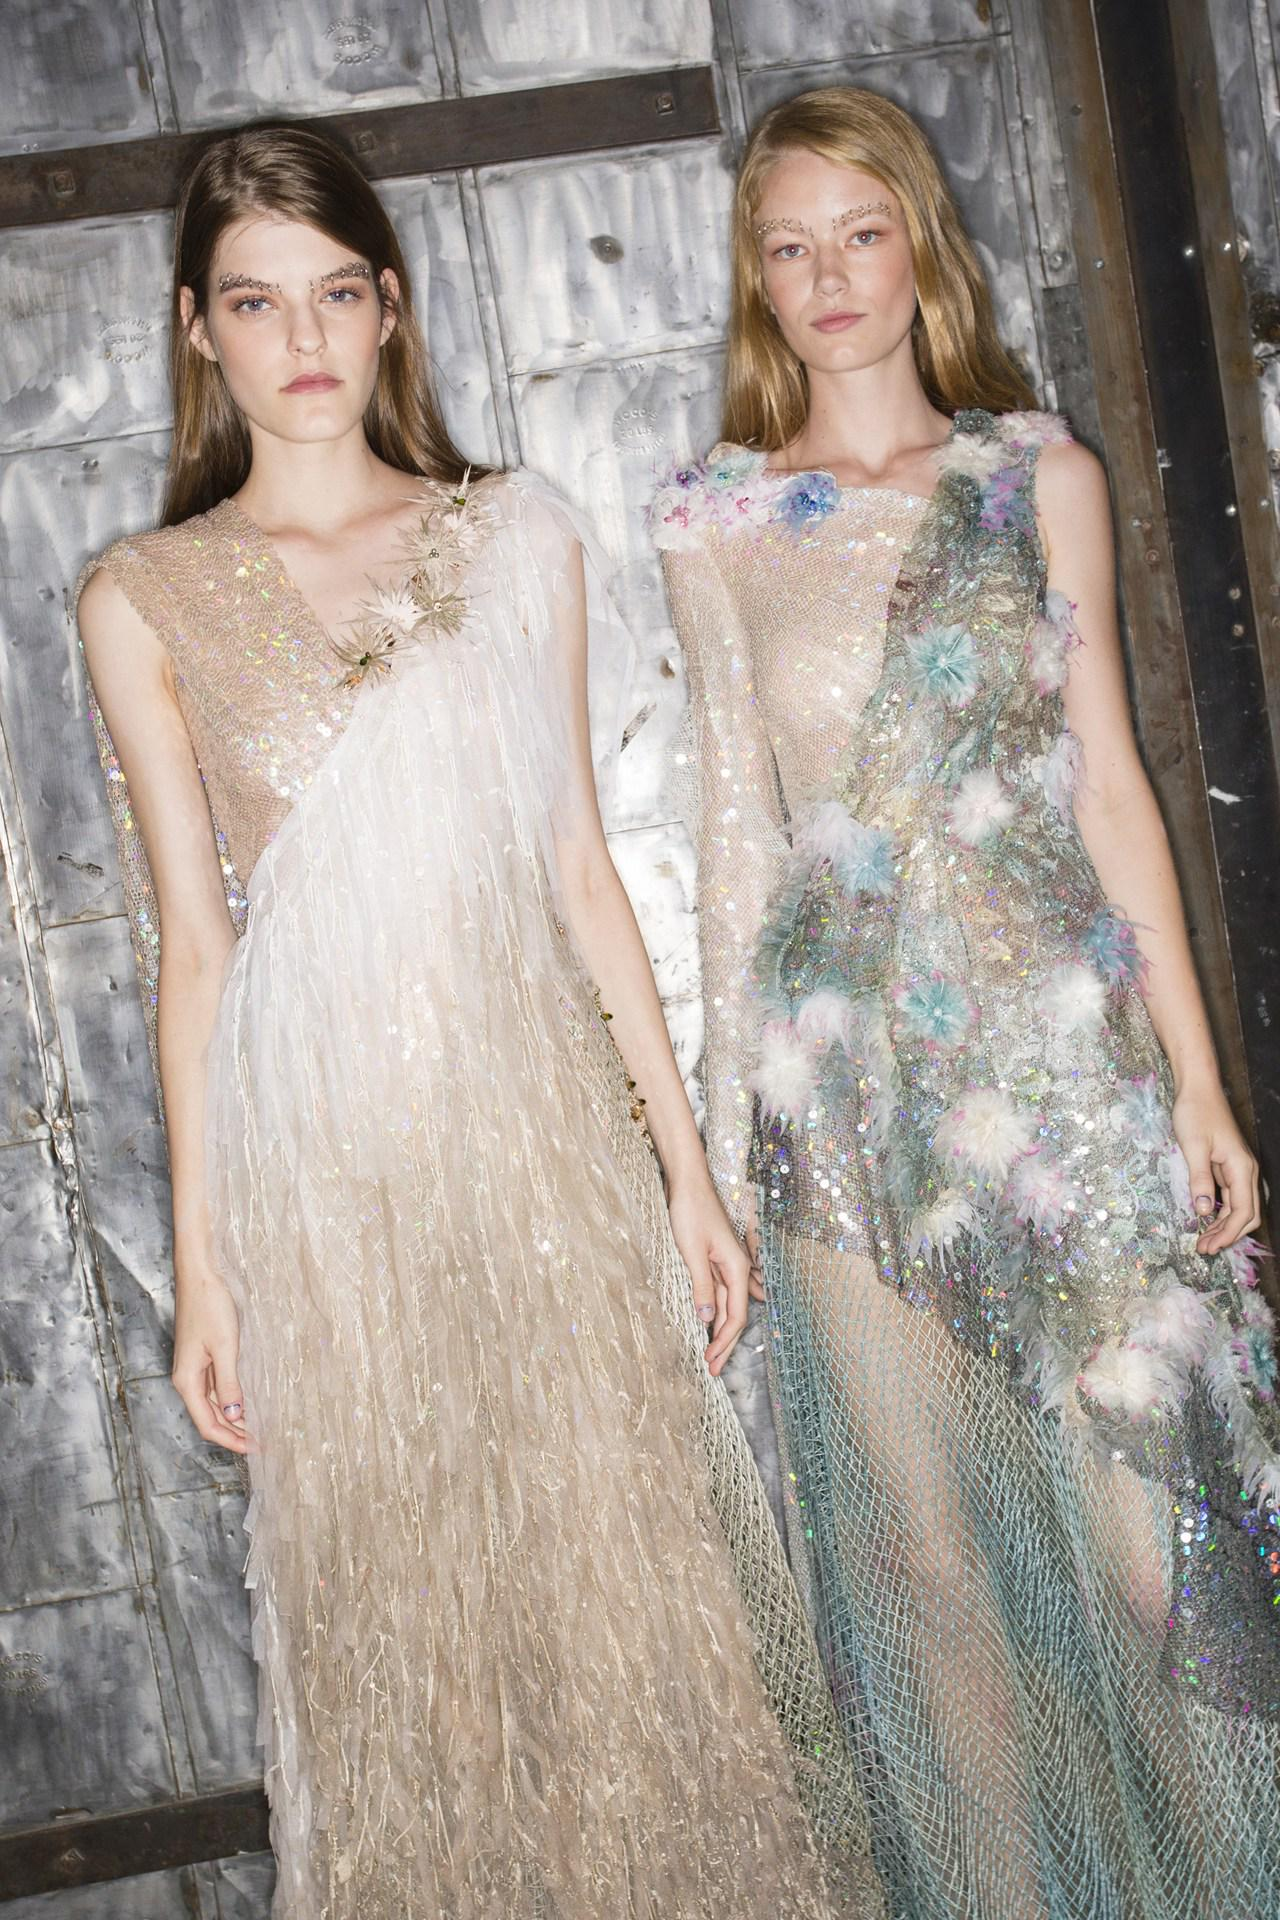 The truth about the changes at Rodarte: http://t.co/pjGkk6zNQV http://t.co/3TeoWuJ4QF